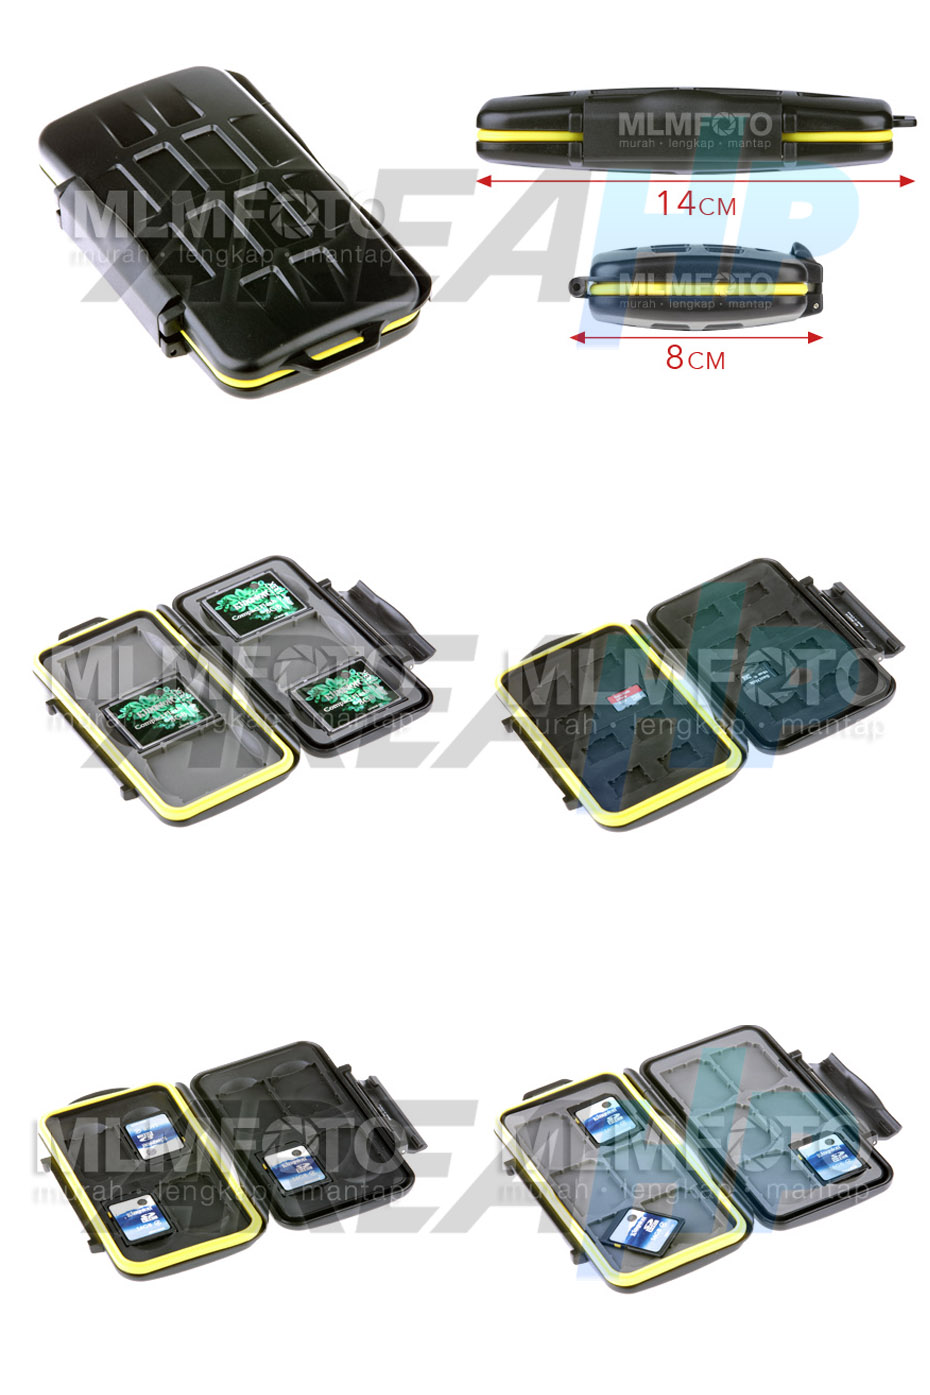 Memory Card Case Overview